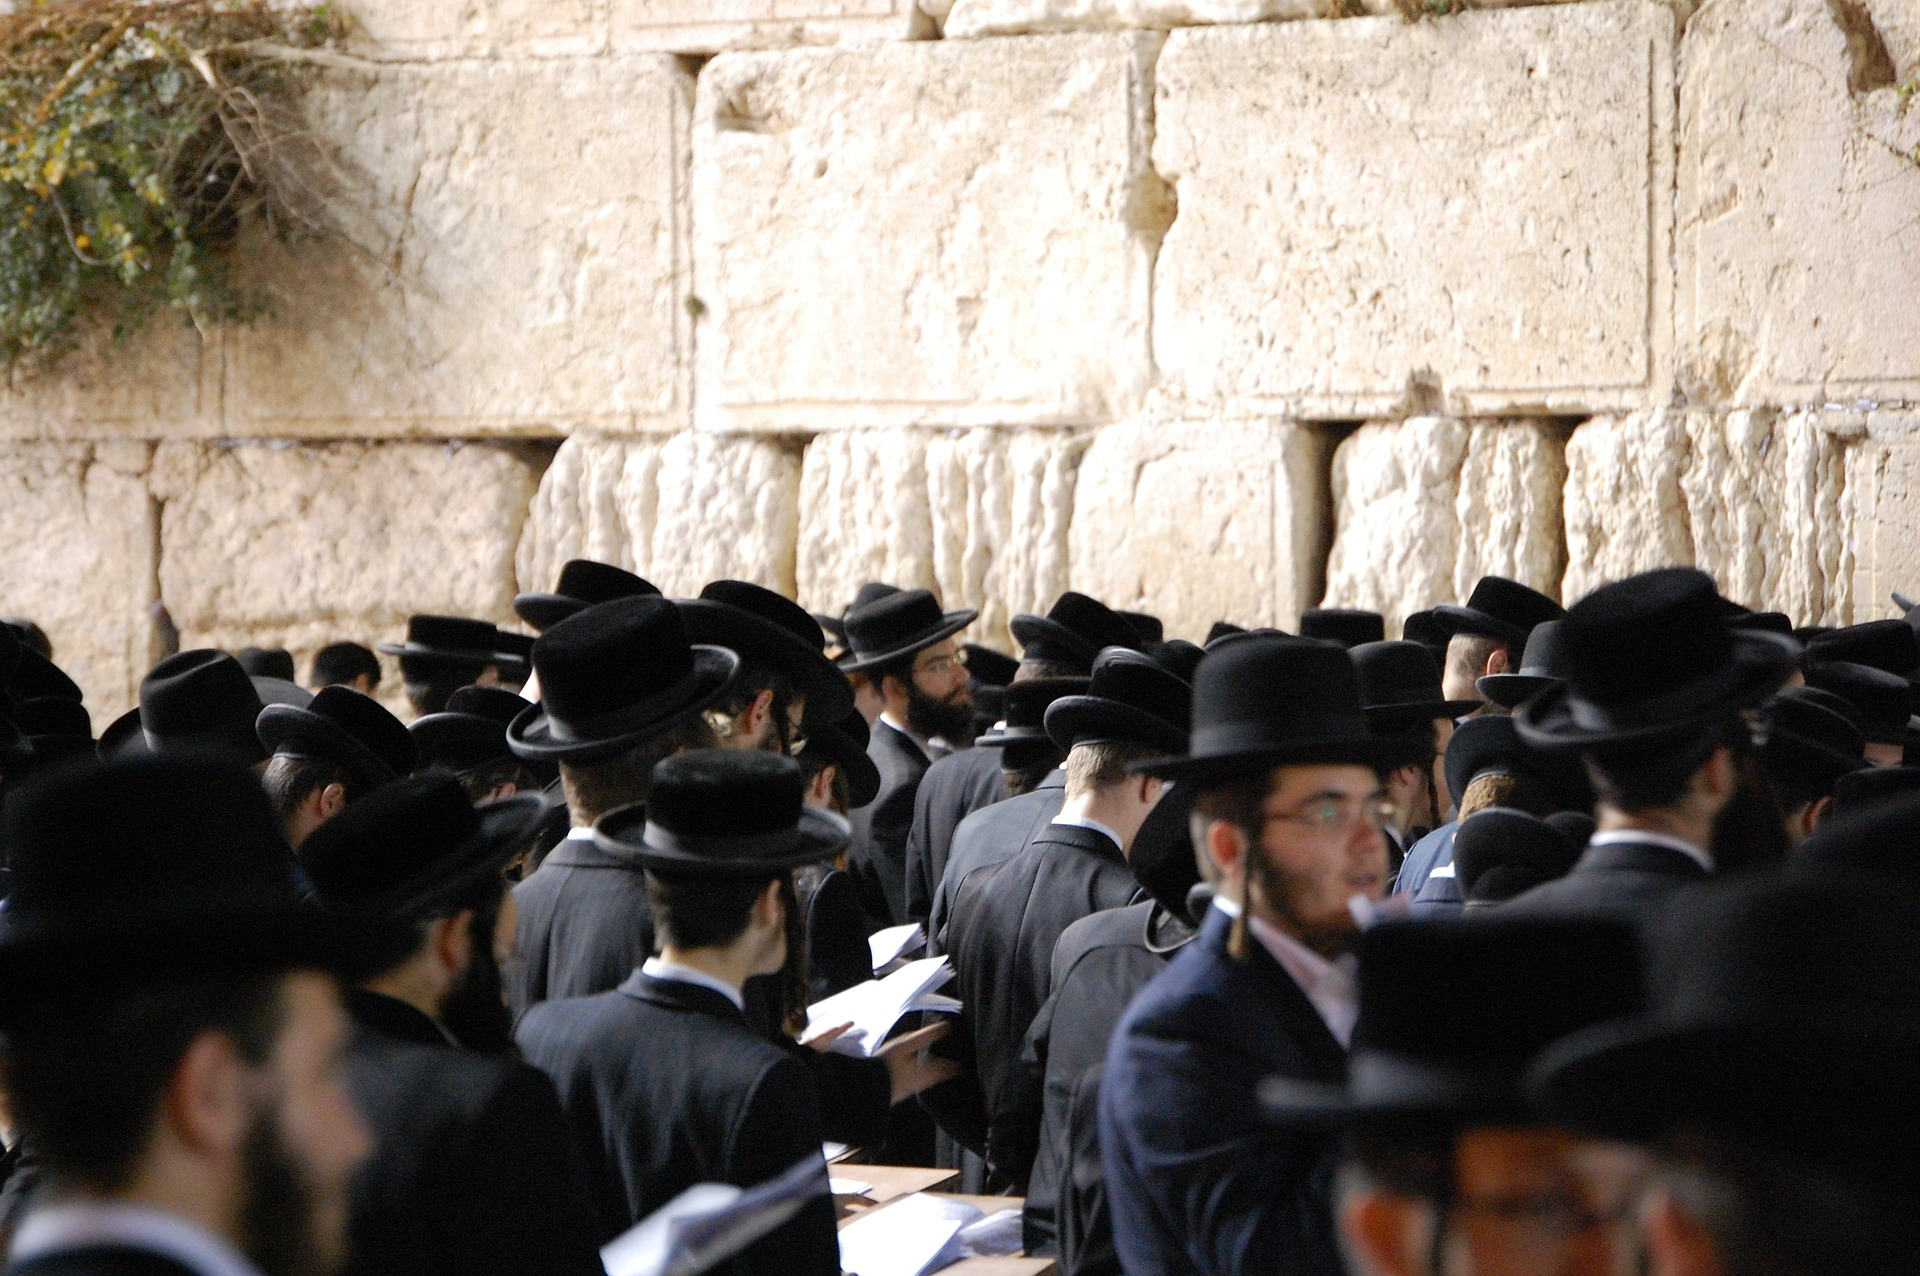 Ultra-Orthodox Jews refuse to enlist in the 'Zionist army'